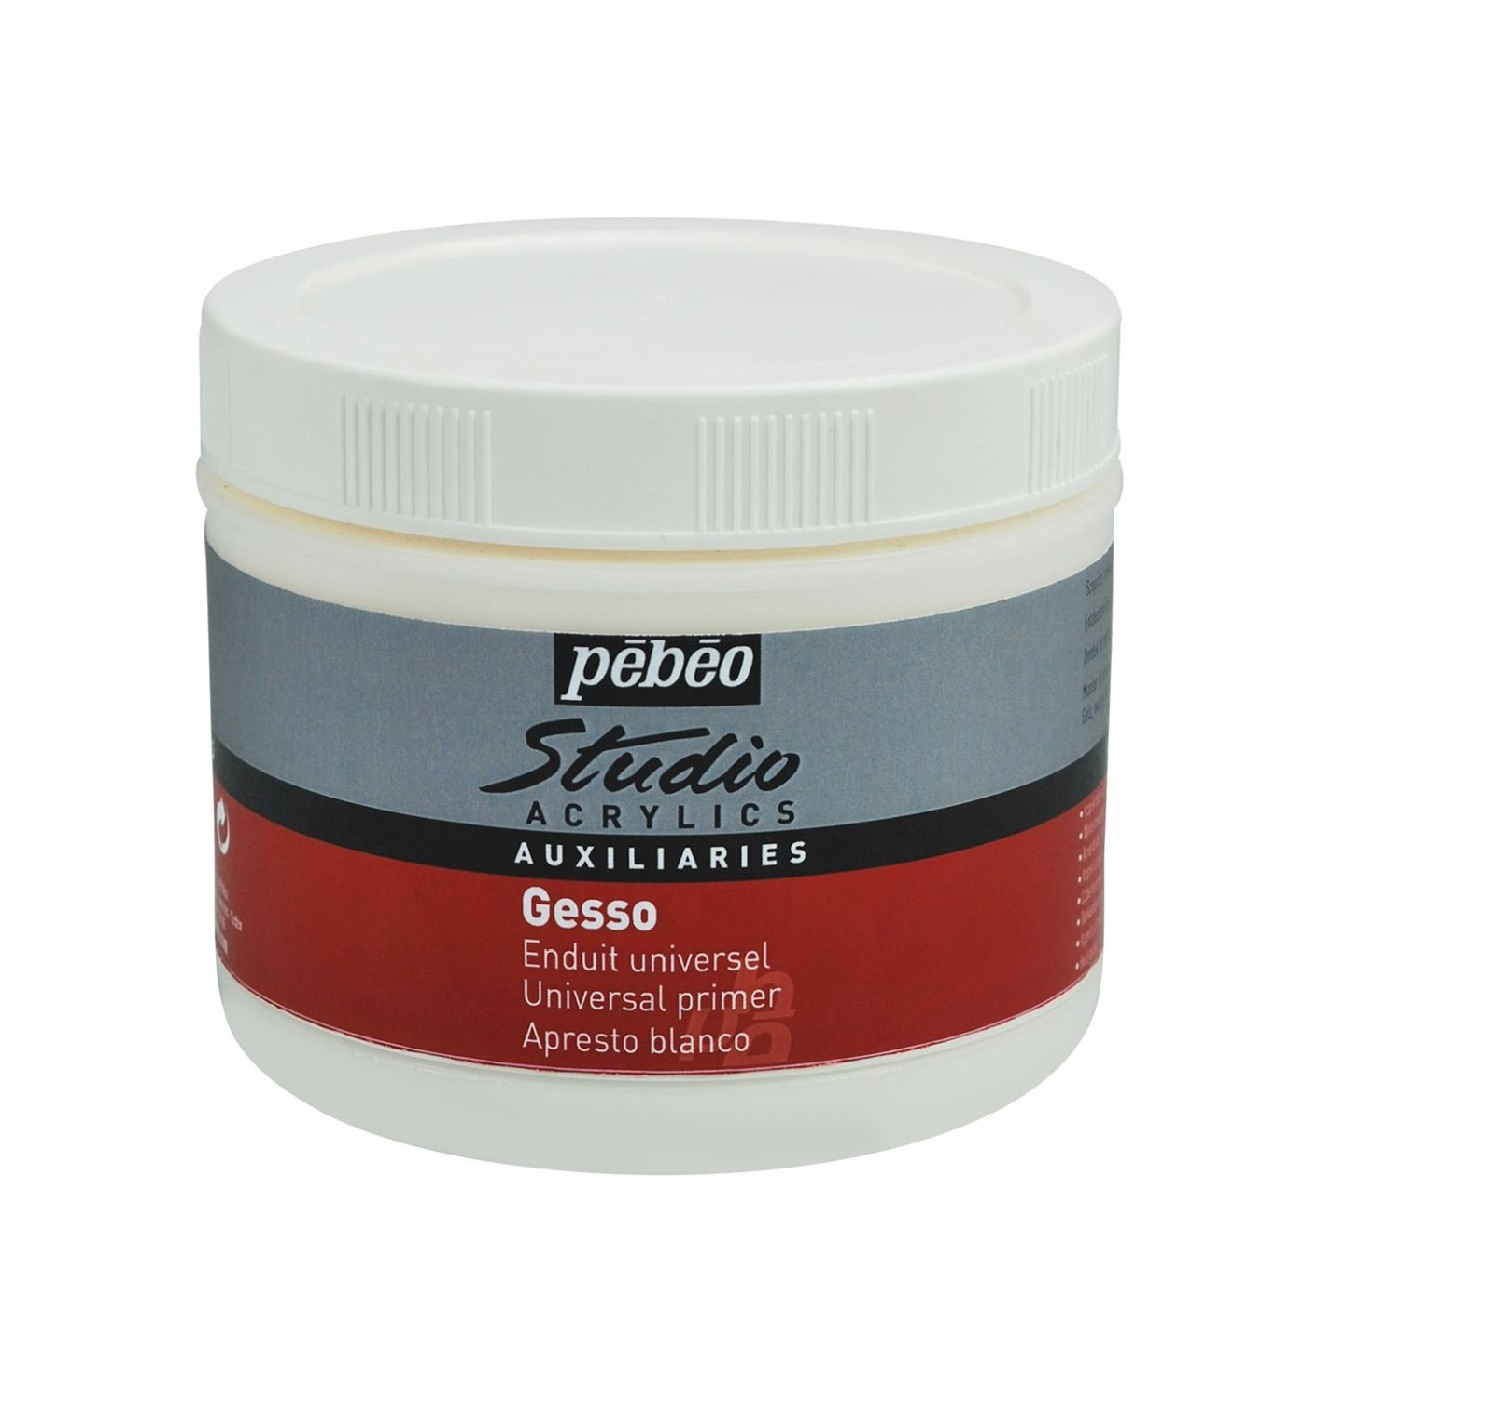 Pebeo Studio Acrylics Auxiliaries Gesso - White - Jar of 500 ml